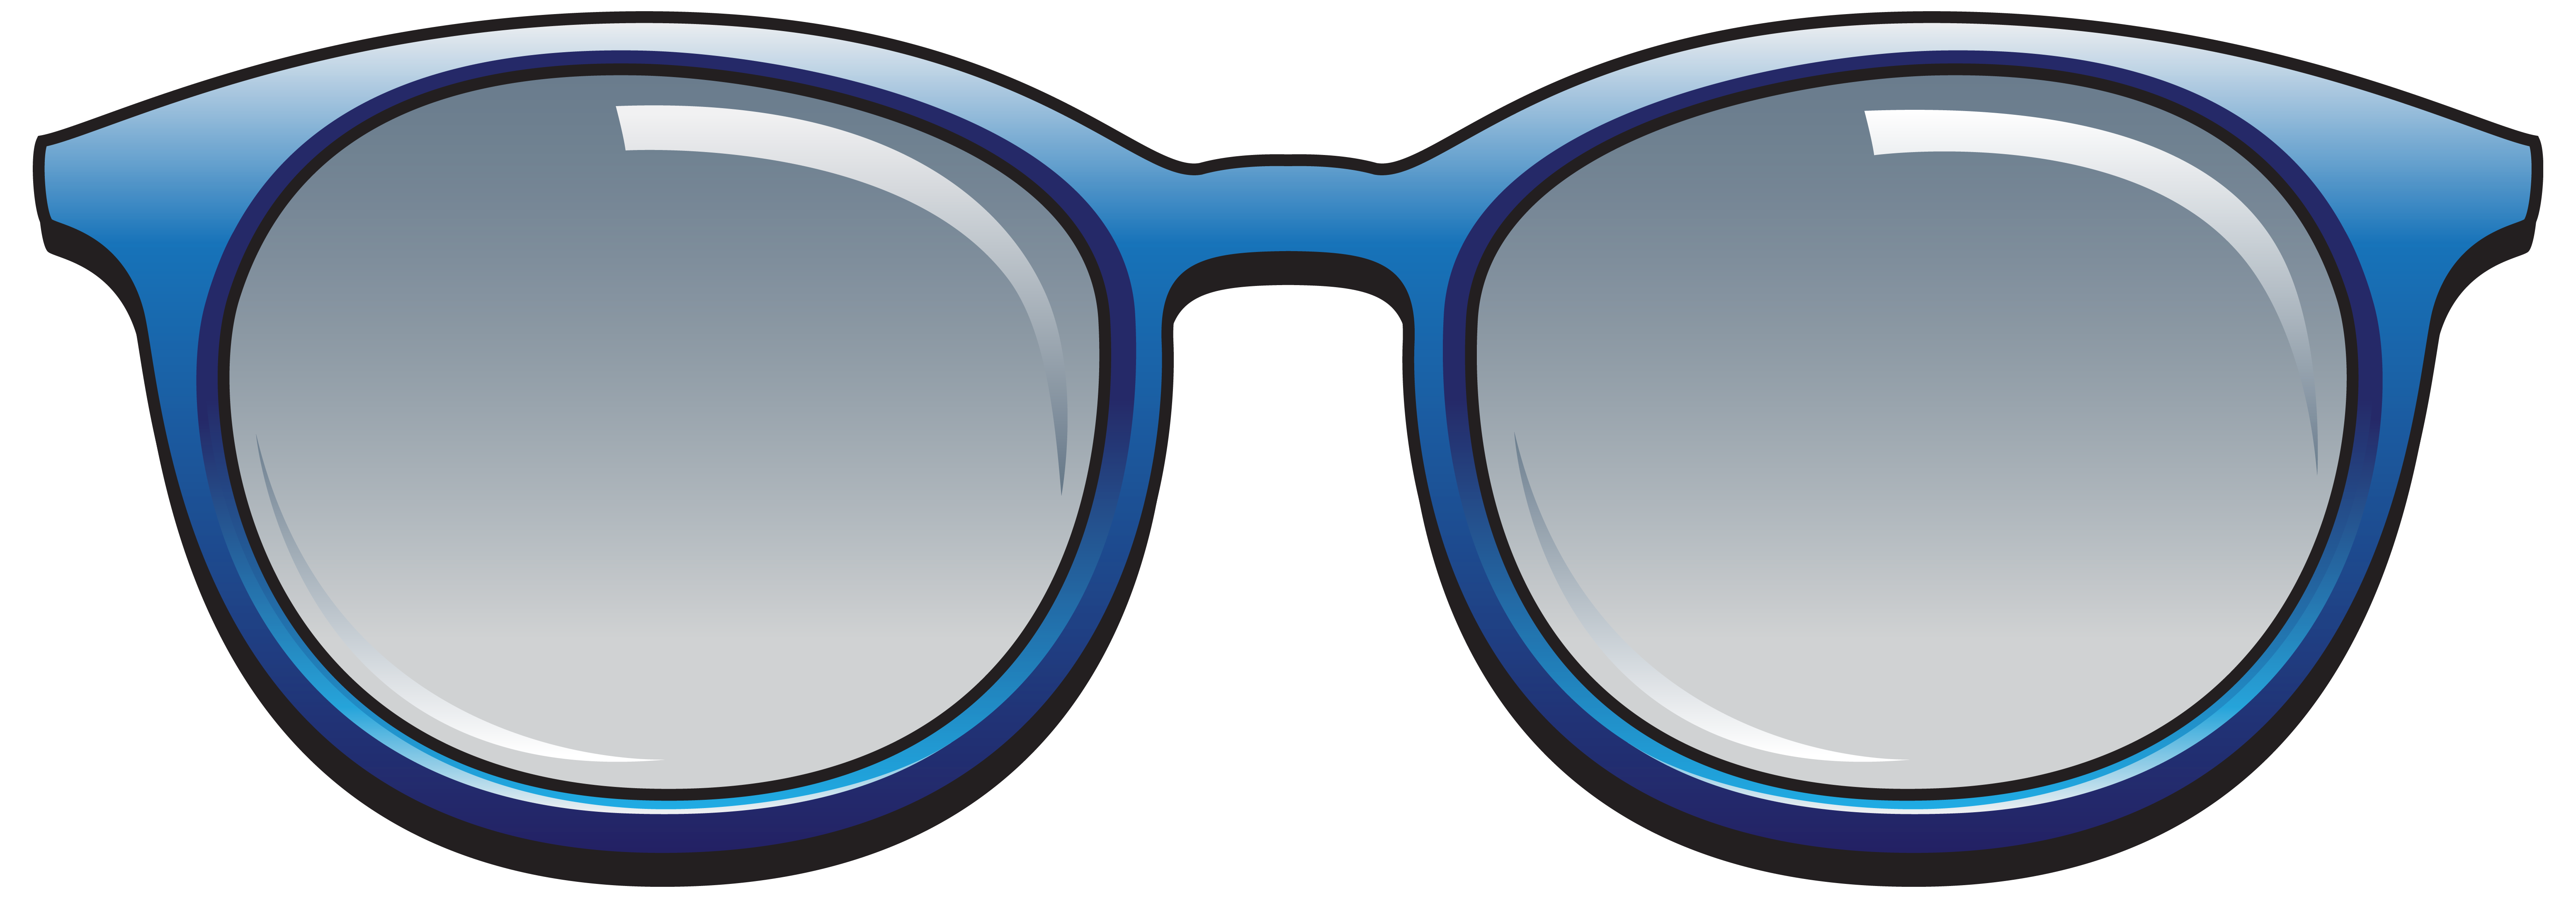 Blue clipart sunglasses. Png image gallery yopriceville